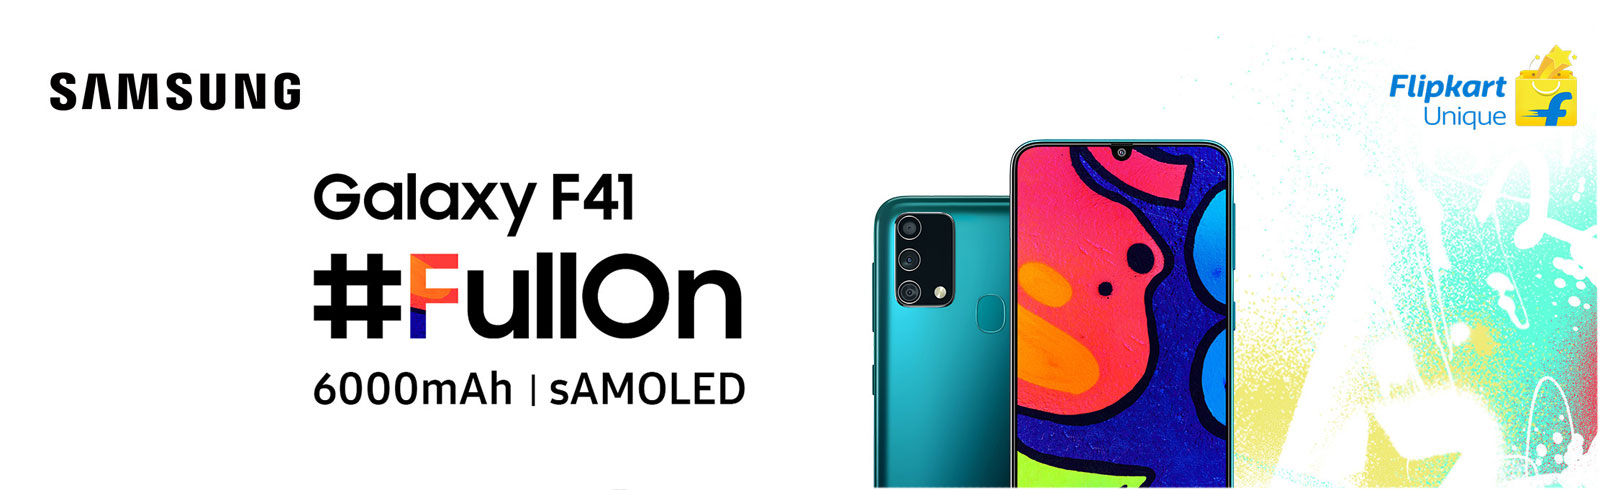 Samsung launches the Galaxy F series in India starting with the Galaxy F1 on October 8